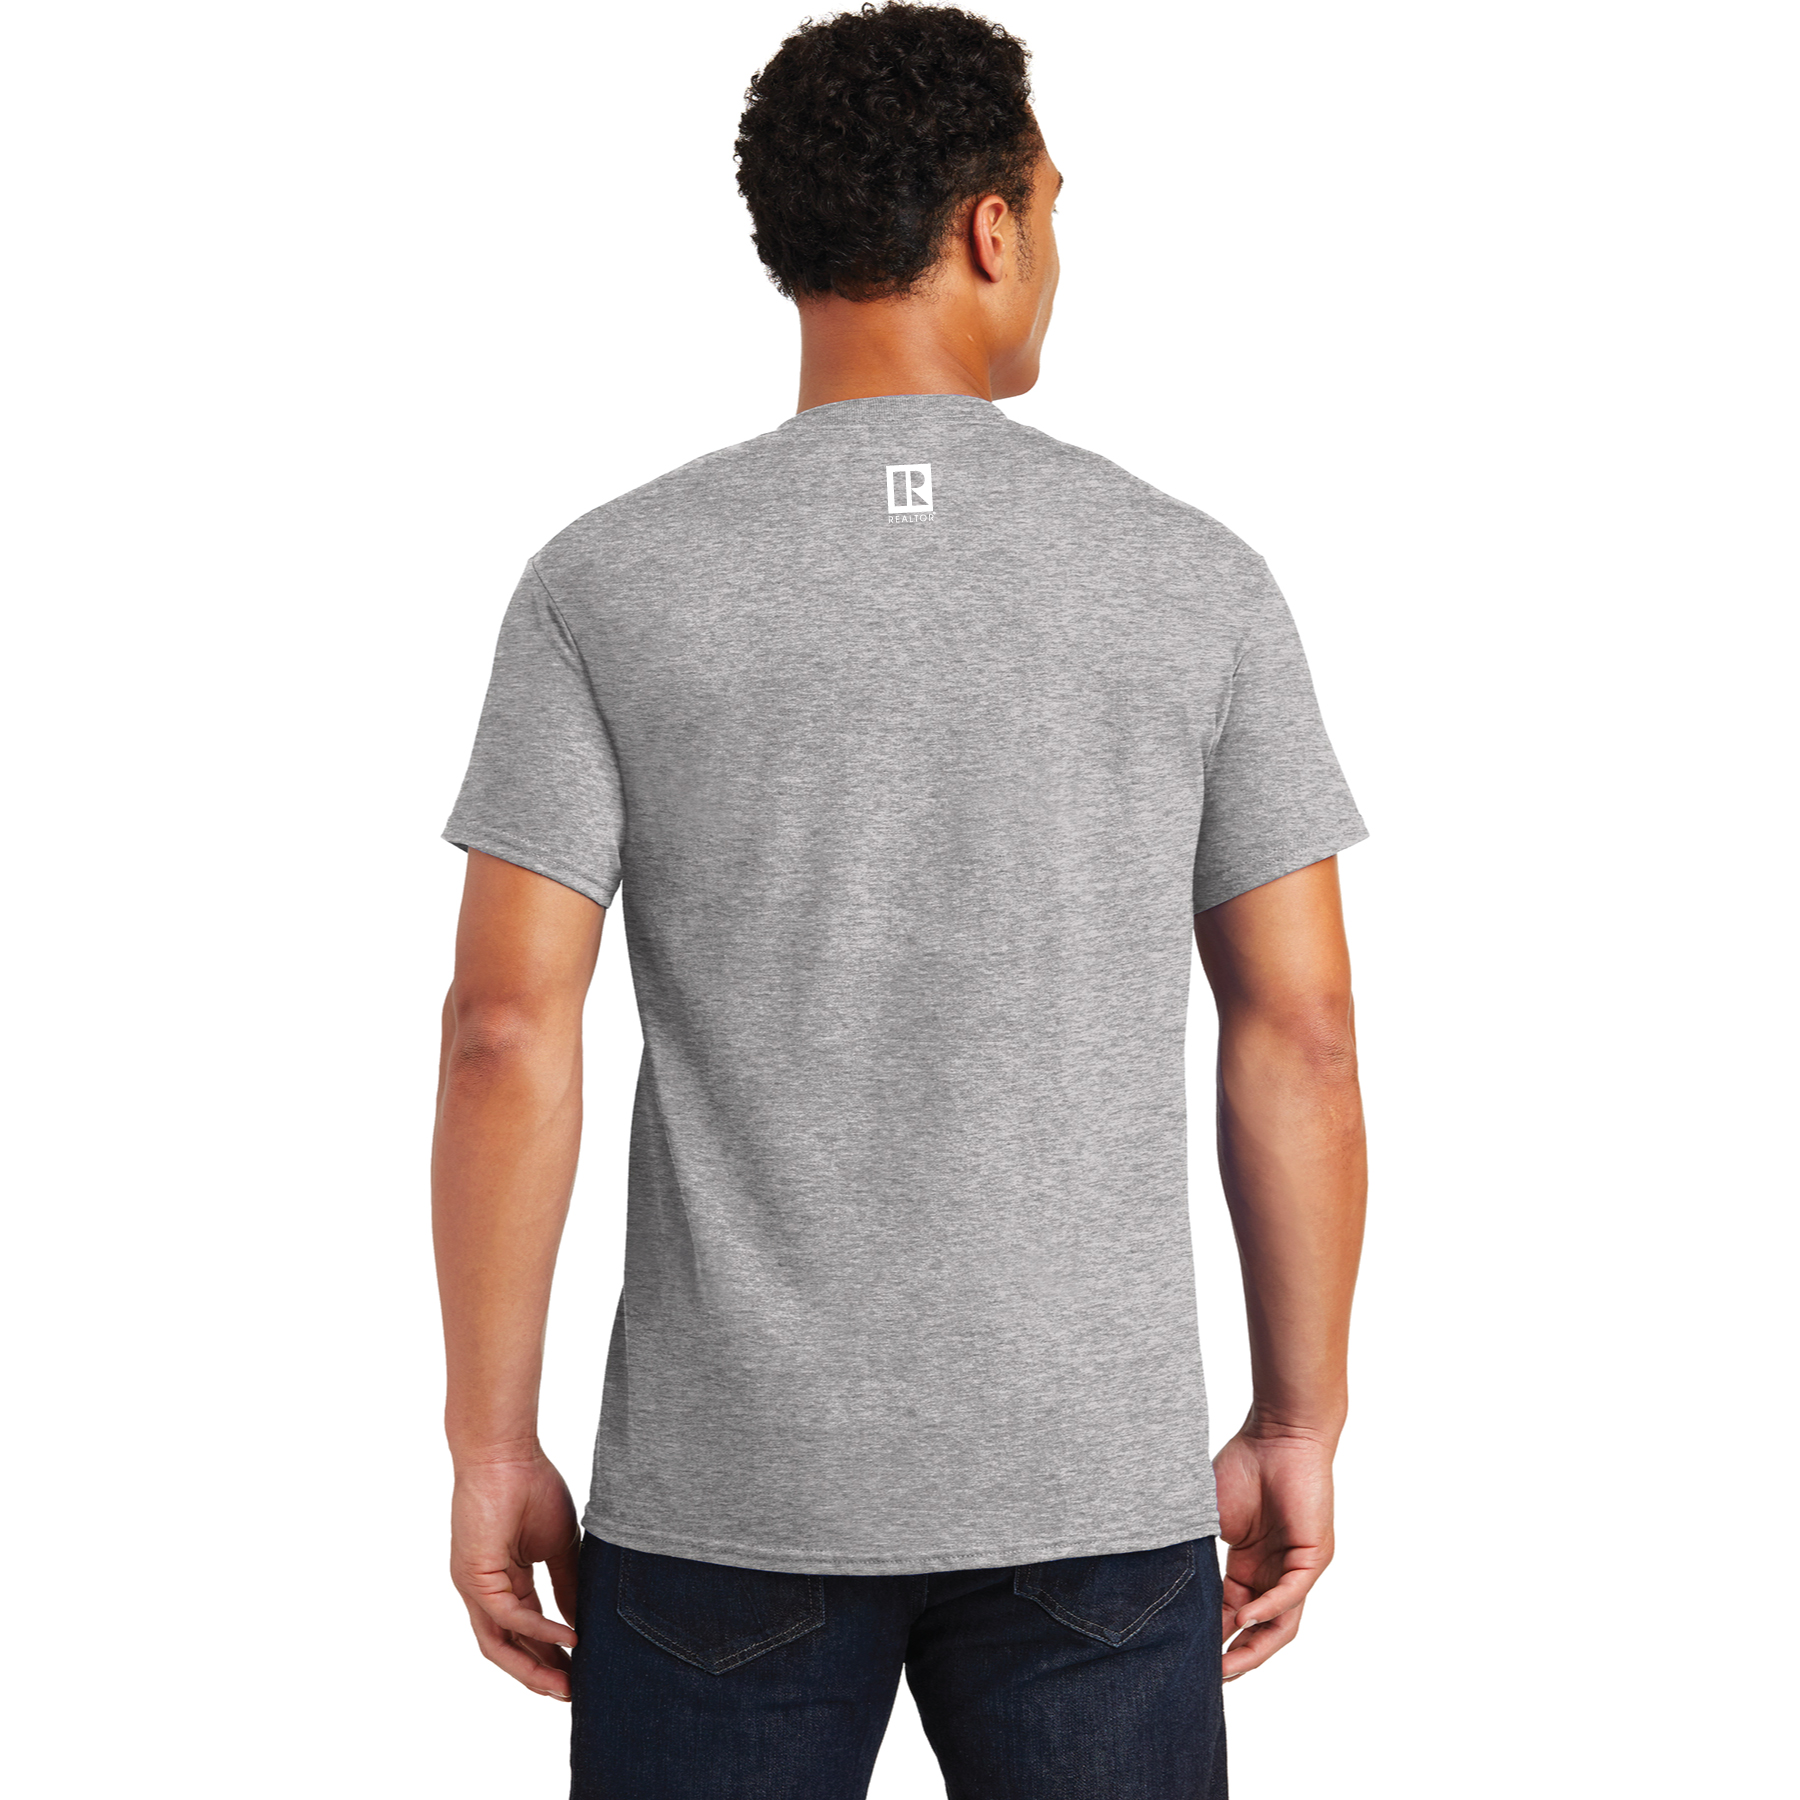 Is Your Agent a REALTOR® Grey Tee Shirt - RCG1147